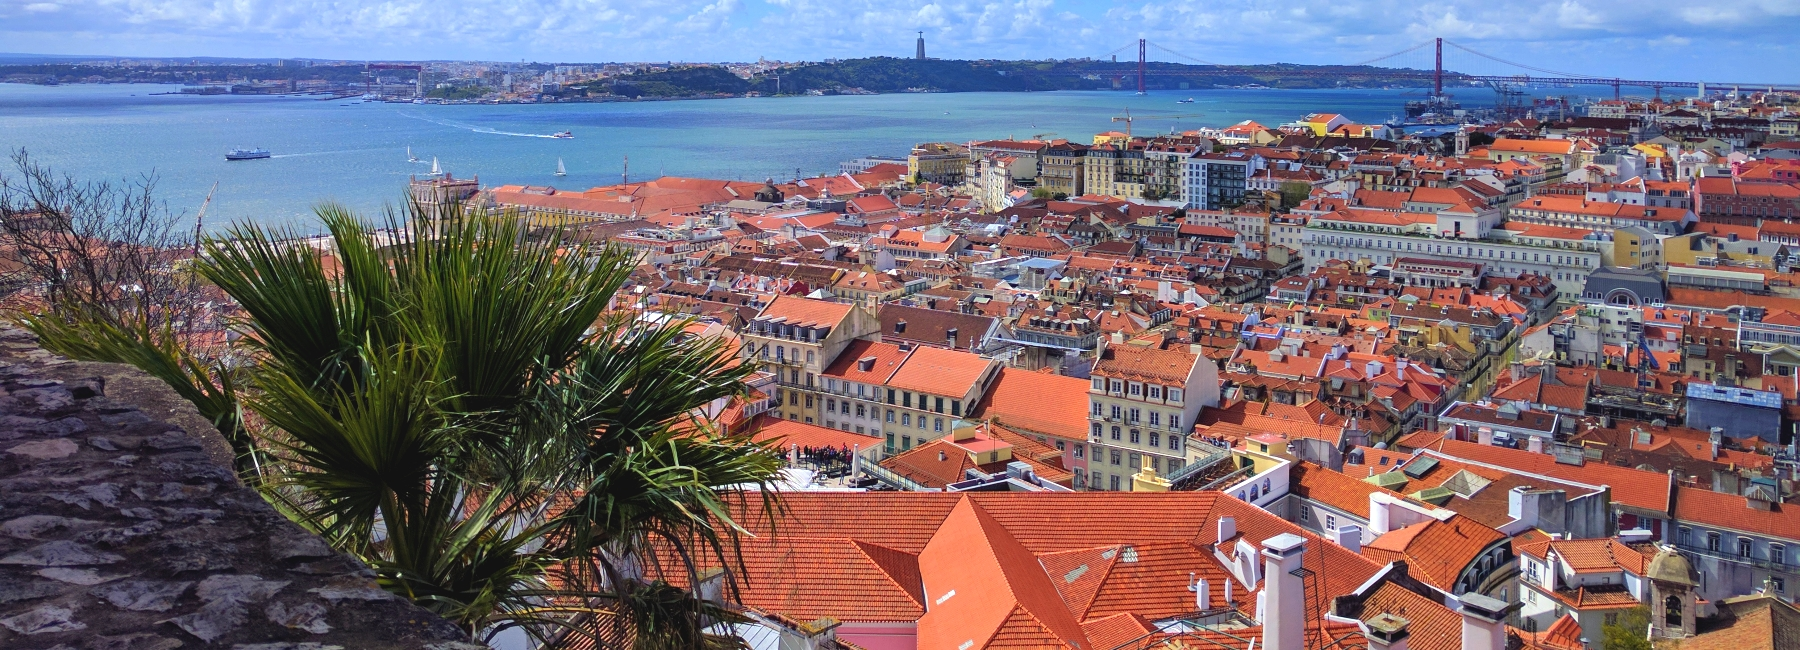 view from the castelo sao jorge with roofs and blue sky at treasures of lisboa food tours